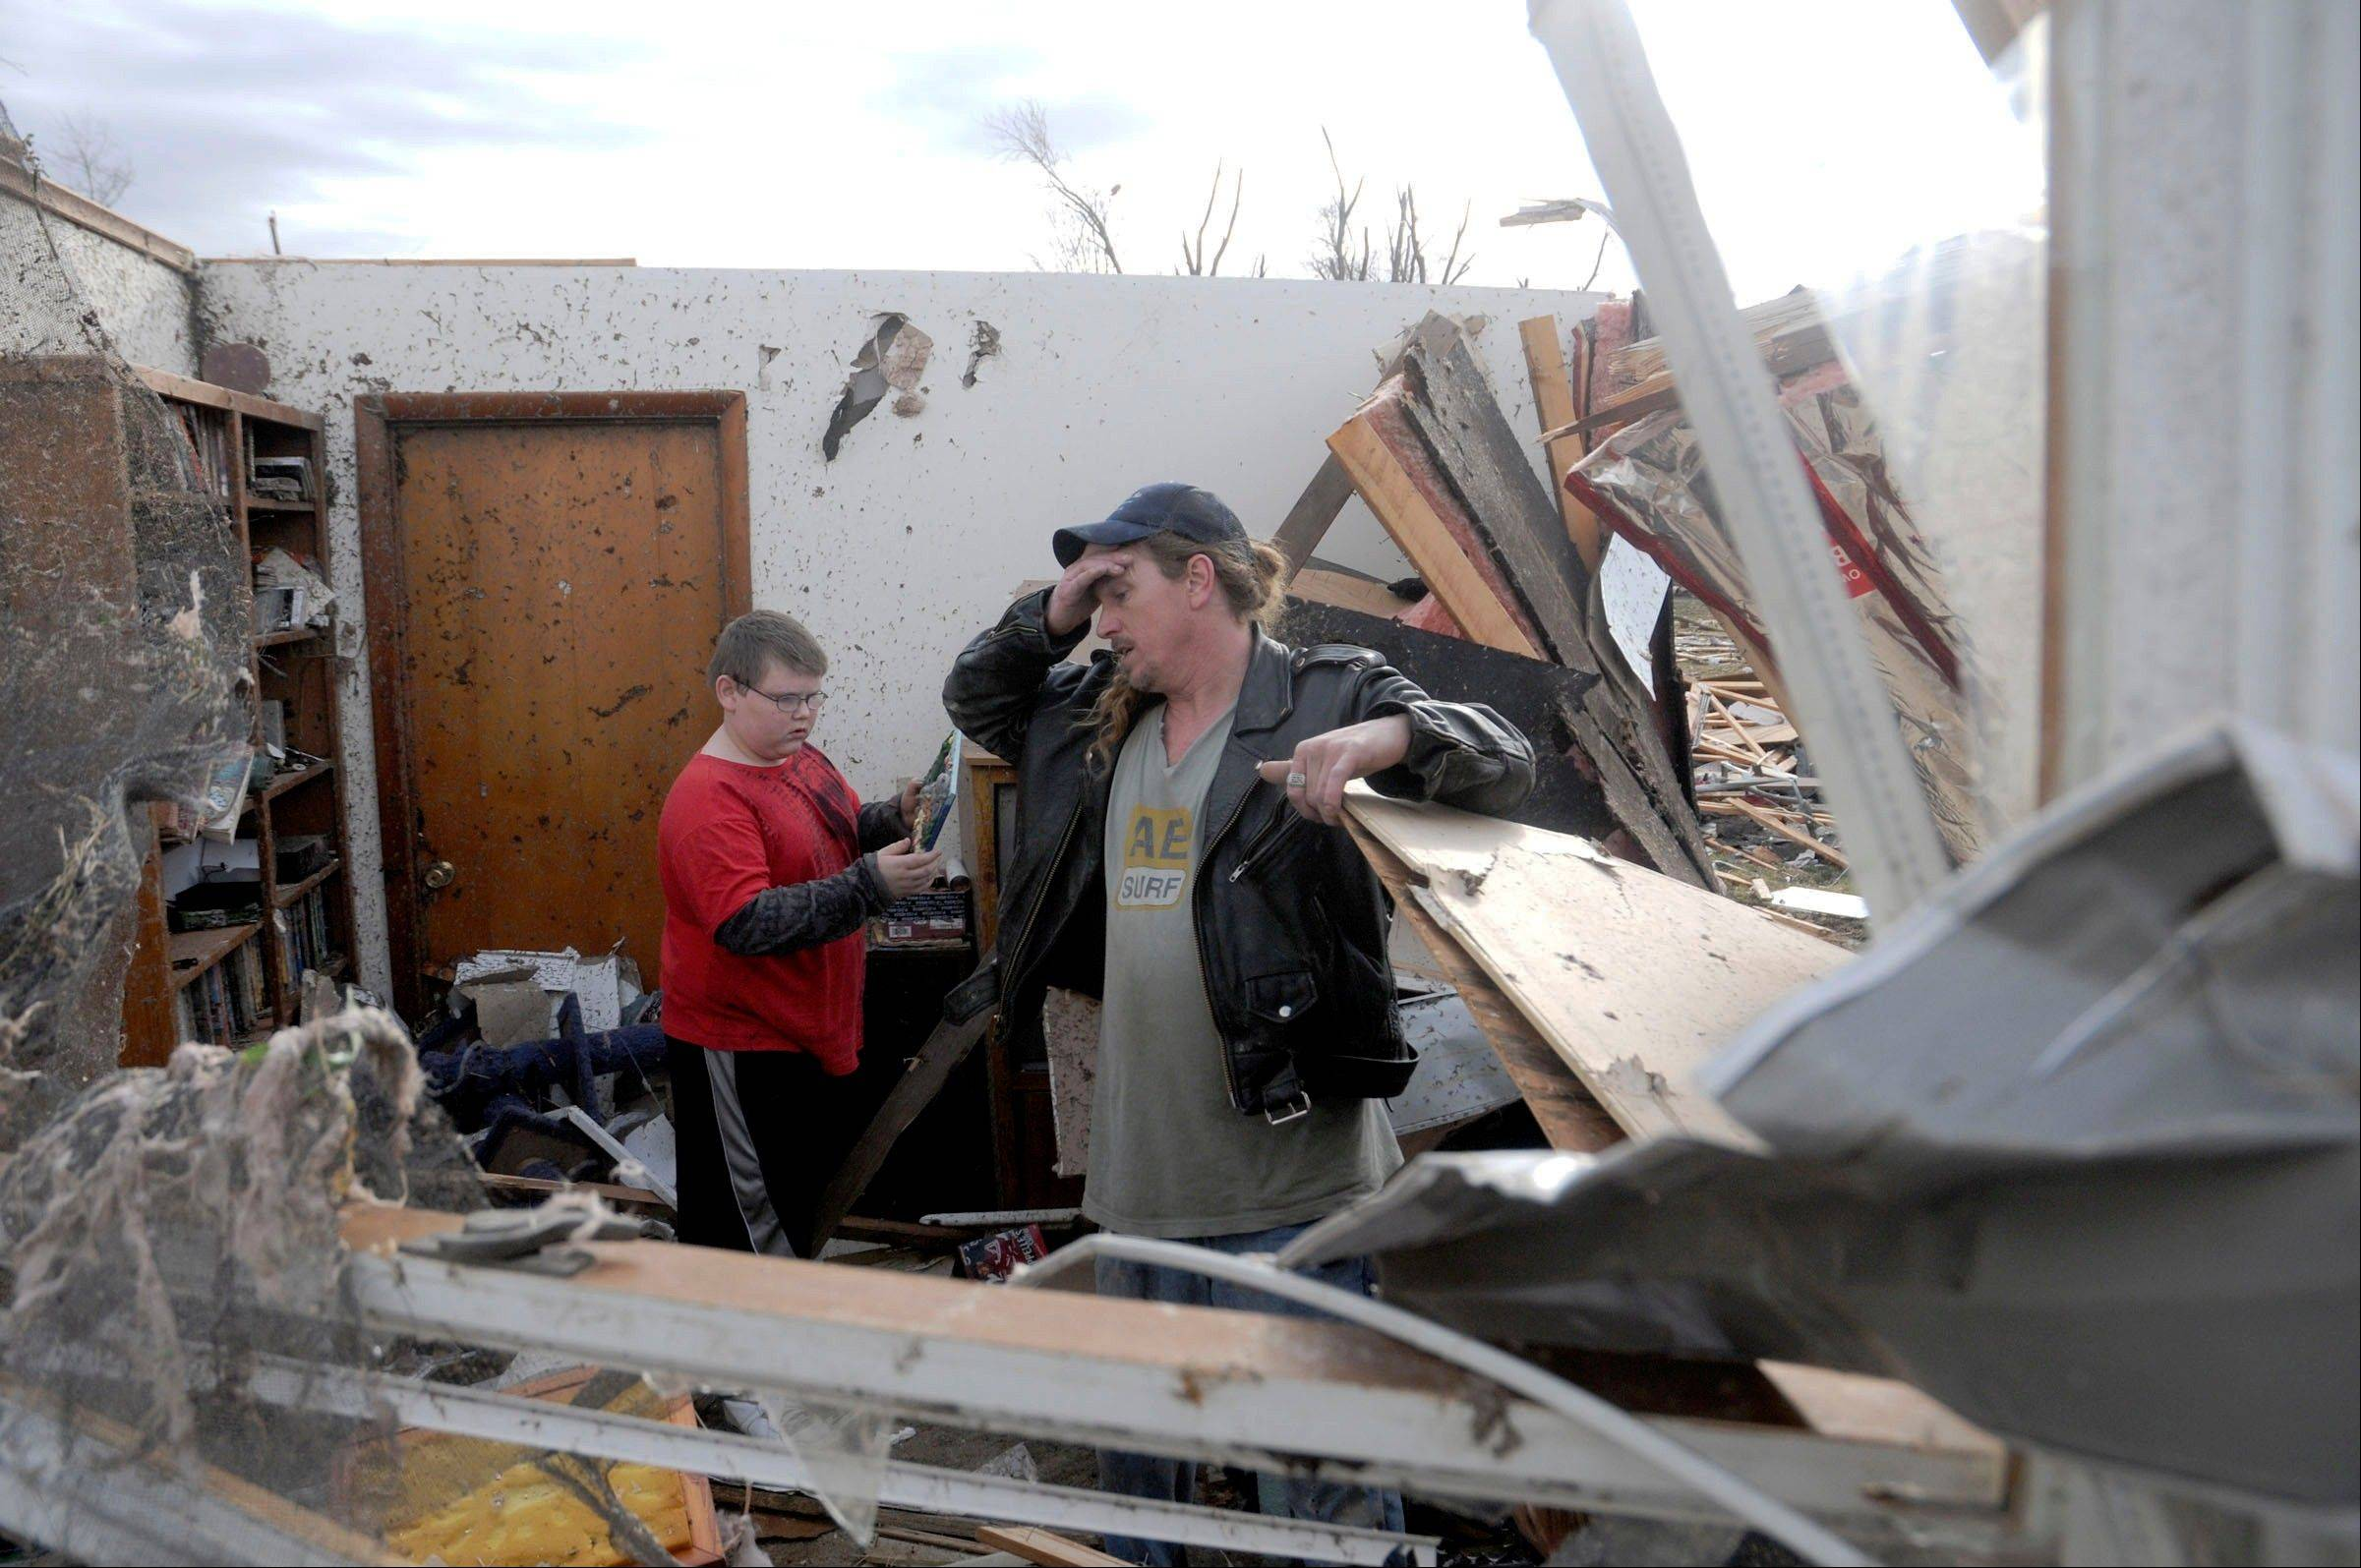 Gene Byrd pauses for a moment while he and his son Devyn Byrd, 14, look over some of the damage sustained to a friends house after a severe storm hit in the early morning hours on Wednesday, Feb. 29, 2012, in Harrisrbug, Ill. A severe pre-dawn storm pounded portions of southern Illinois on Wednesday. Several deaths have been reported in Harrisburg and left the city's medical center scrambling to treat an influx of injured, the hospital's top administrator said.